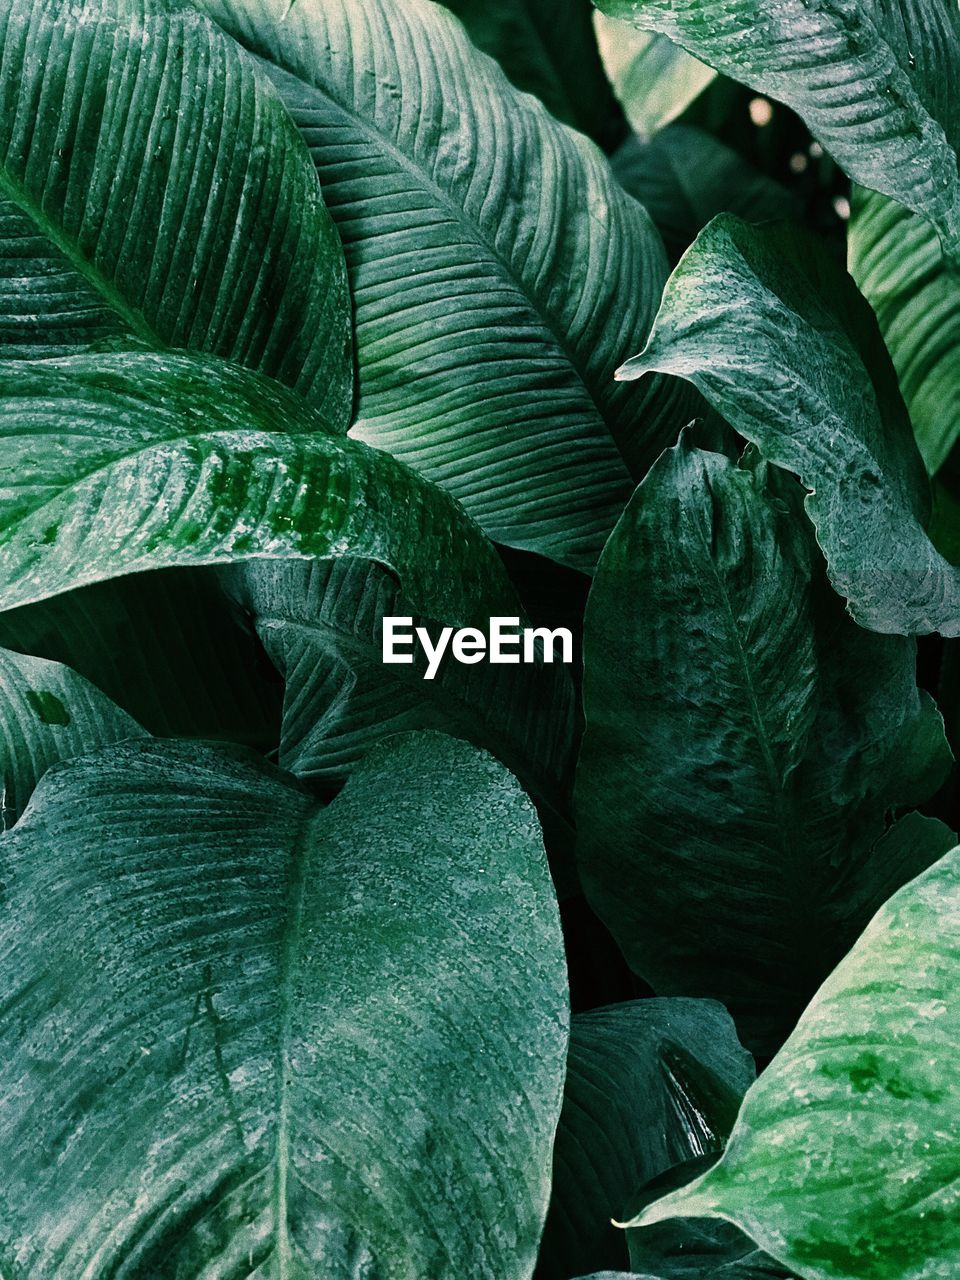 leaf, plant part, green color, growth, full frame, plant, no people, close-up, backgrounds, nature, beauty in nature, day, freshness, natural pattern, leaf vein, leaves, tranquility, outdoors, food and drink, botany